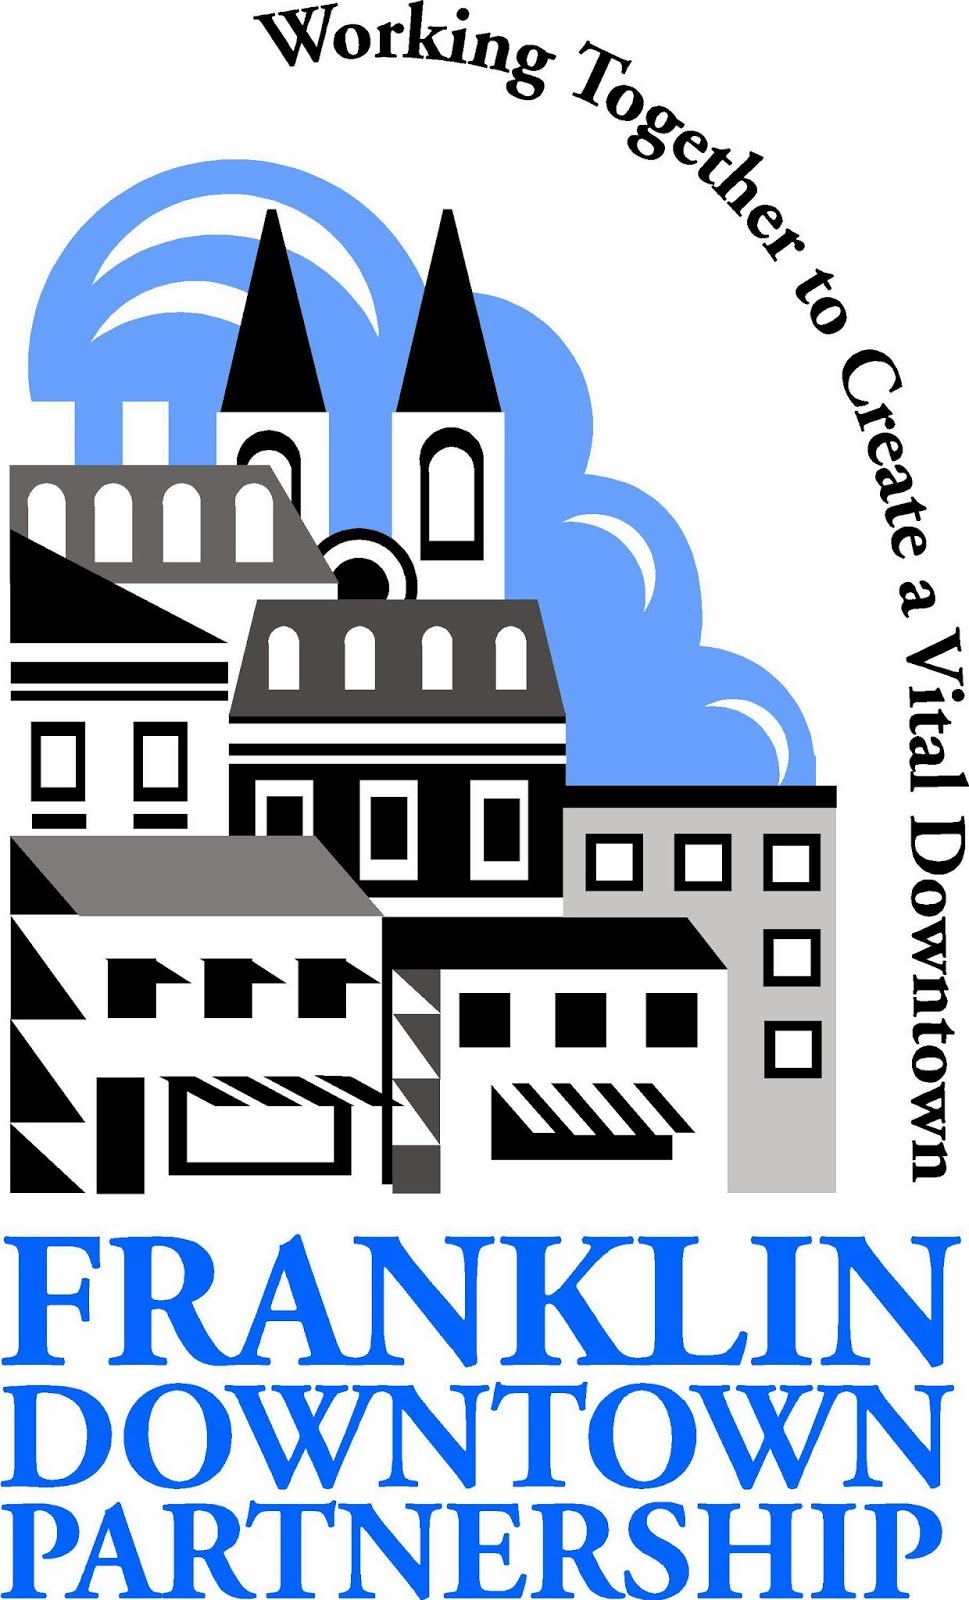 http://www.franklindowntownpartnership.org/